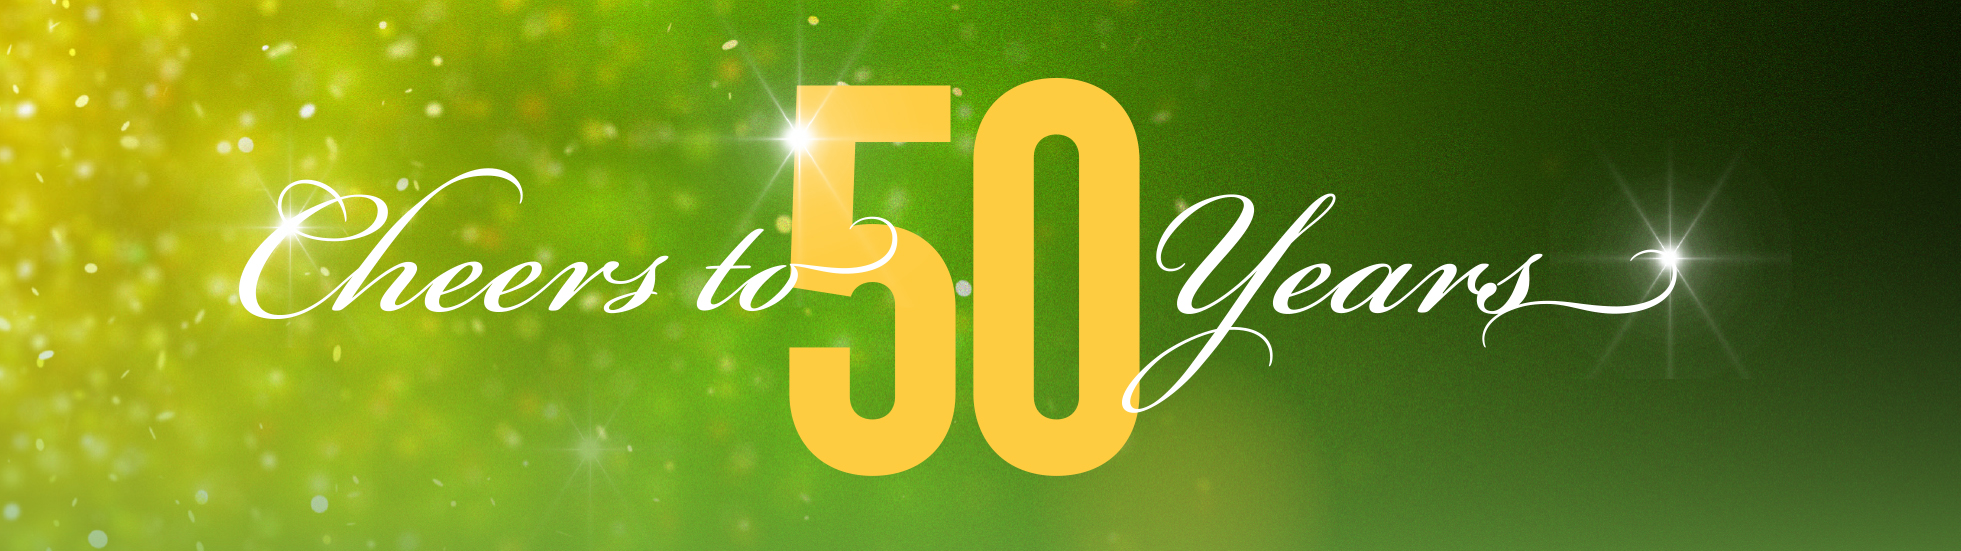 50thGala_Email_banner.jpg